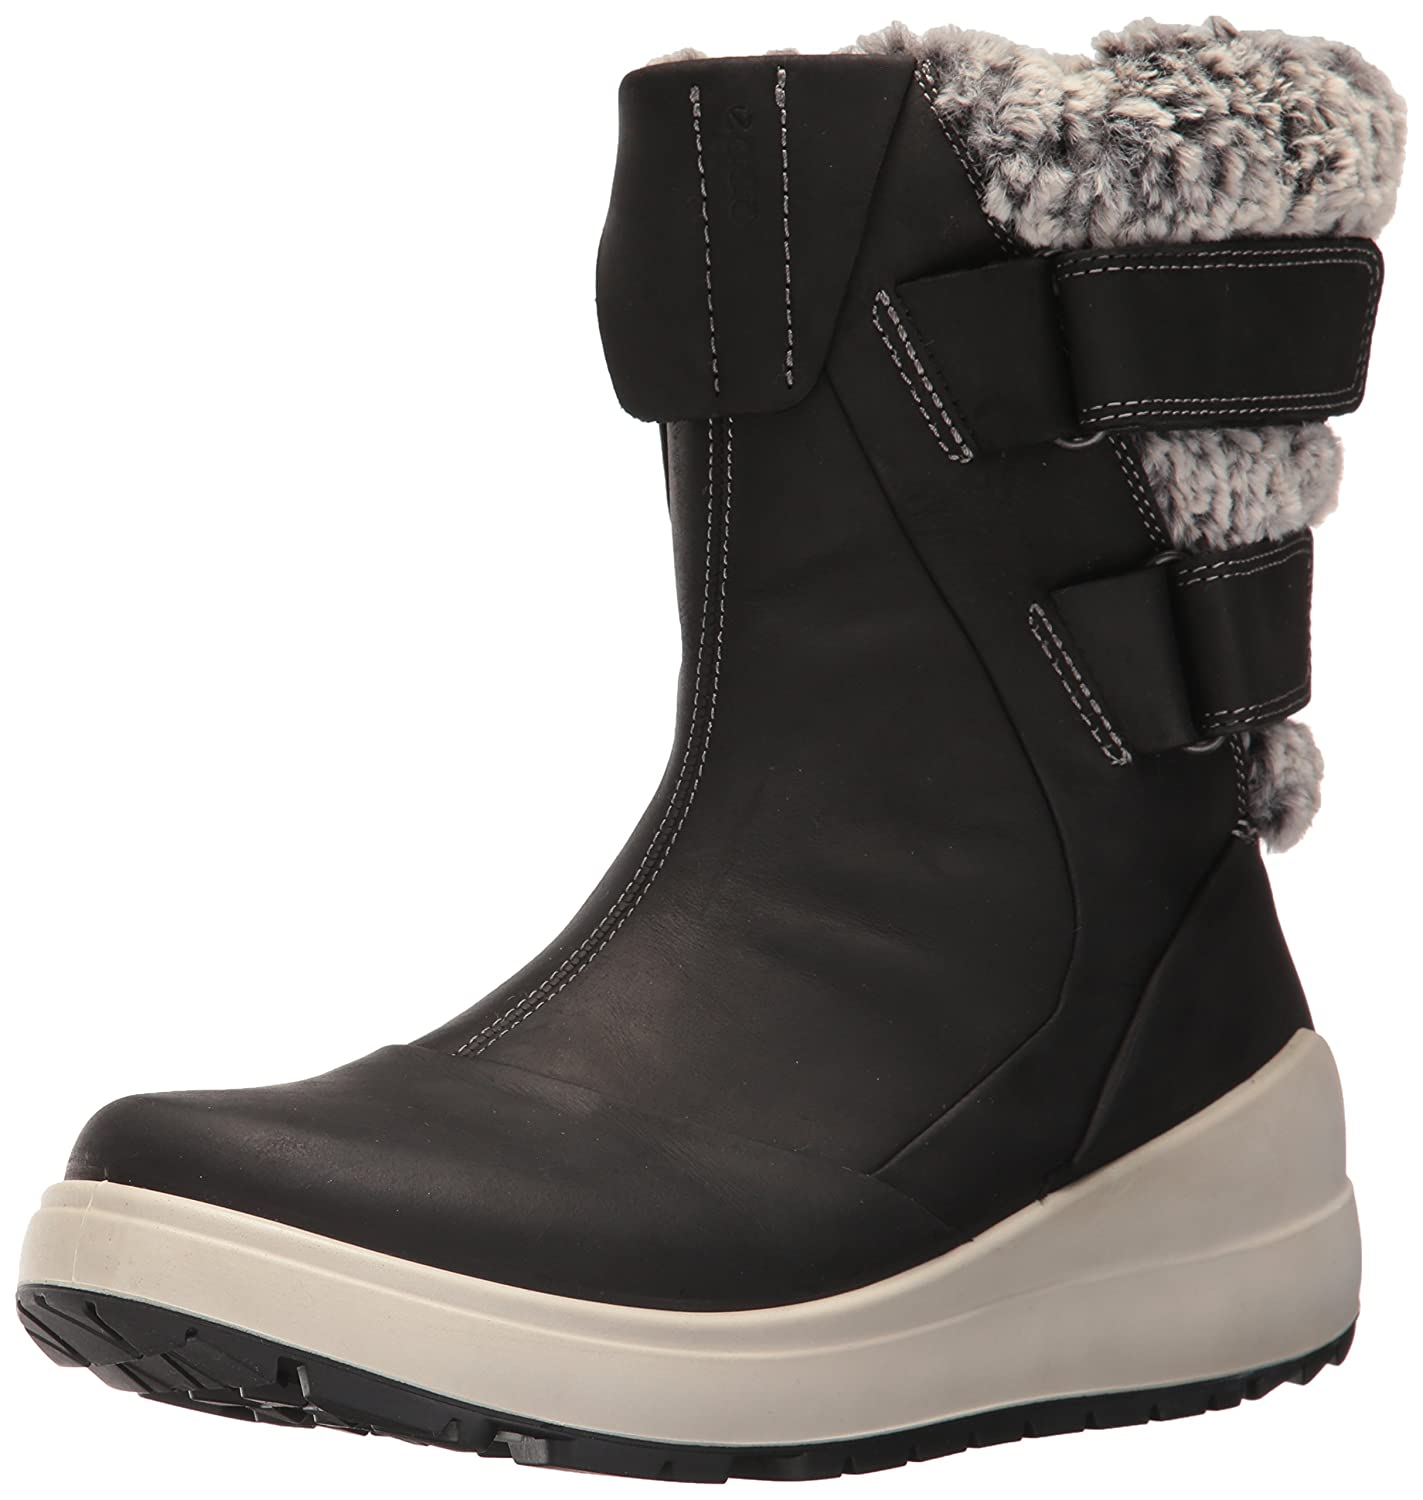 ECCO Women's Noyce Snow Boot B01M7U71NM 42 EU / 11-11.5 US|Black